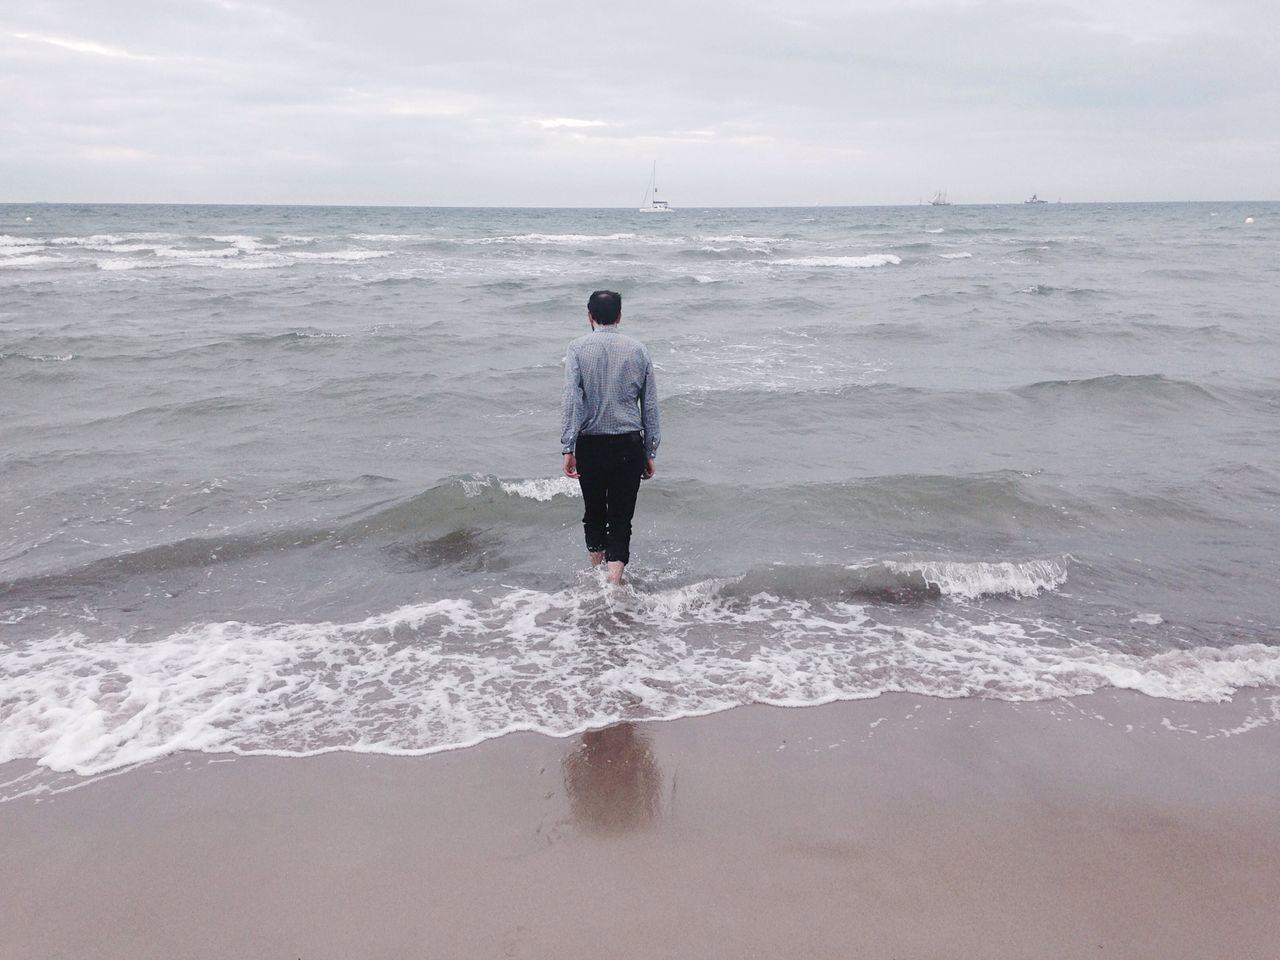 Chilly summer days. Rostock Beach Walk Daring Cold Feet Rusty Seaside Horizon Over Water Escapism Solitude In The Sea Tranquil Scene Mindful Walk Away Ships Sea Water Wave Tranquility Beach Beauty In Nature Remote Scenics